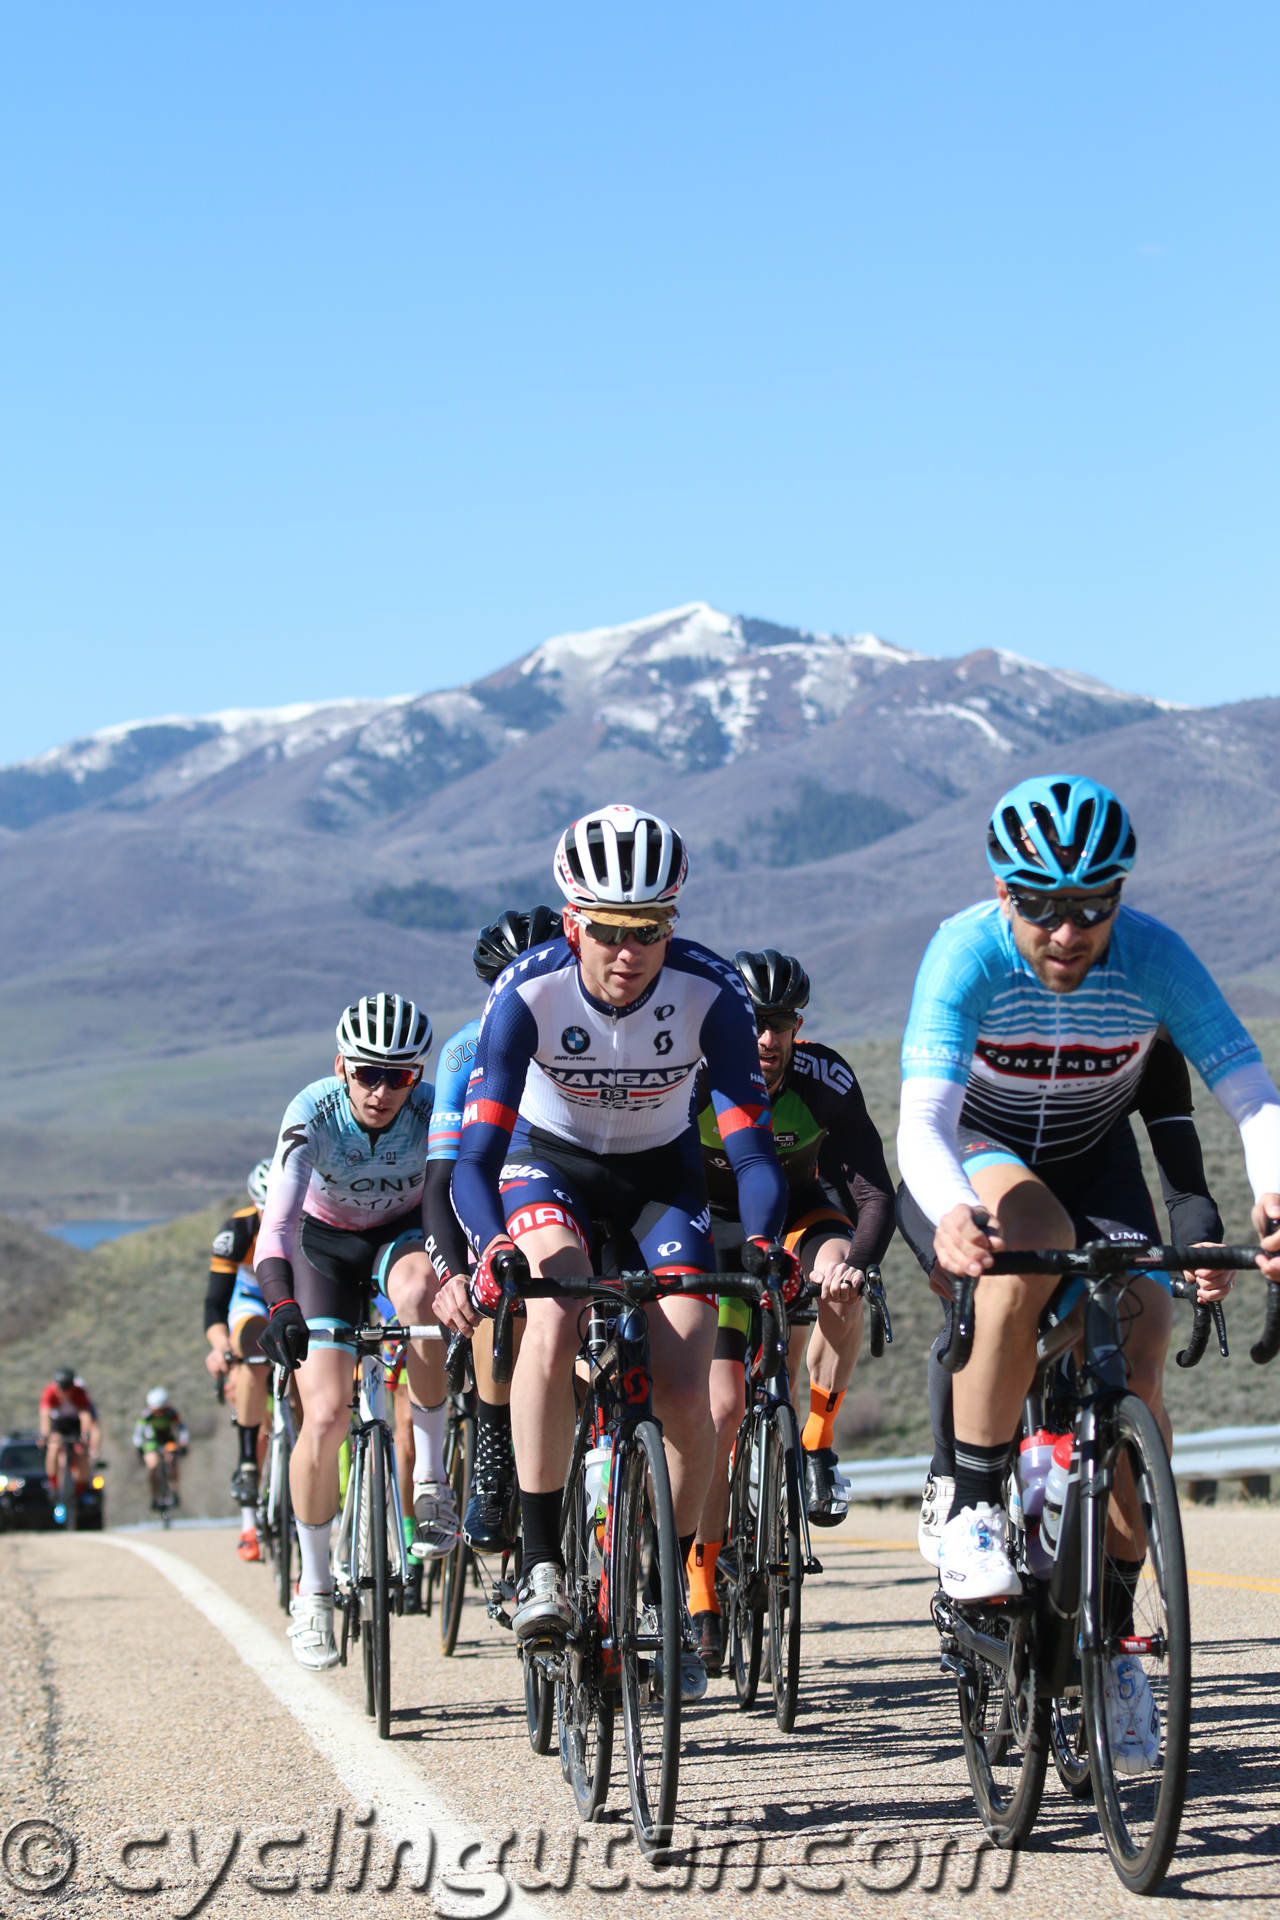 East-Canyon-Echo-Road-Race-4-21-2018-IMG_7481